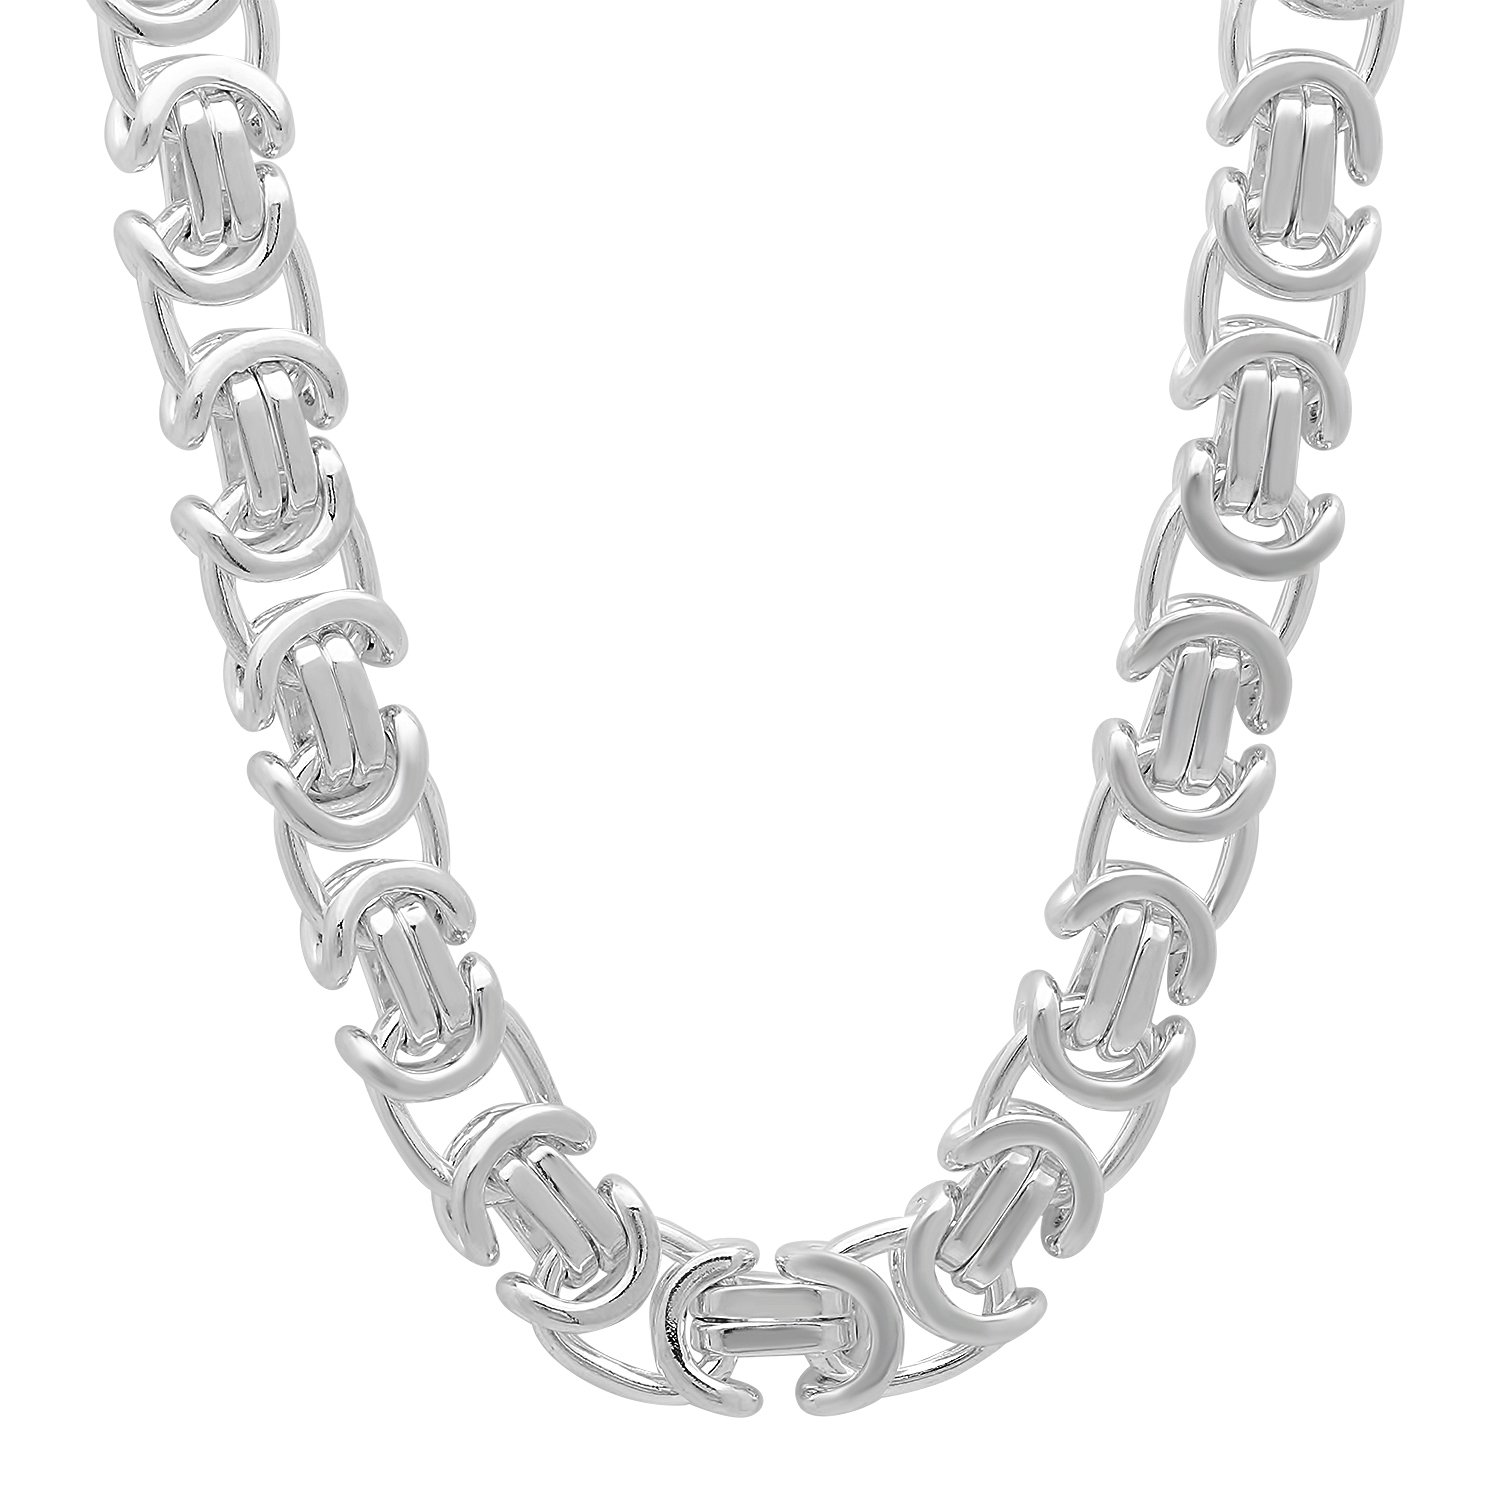 8mm 925 Sterling Silver Nickel-Free Byzantine Link Chain, 20'' - Made in Italy + Cleaning Cloth